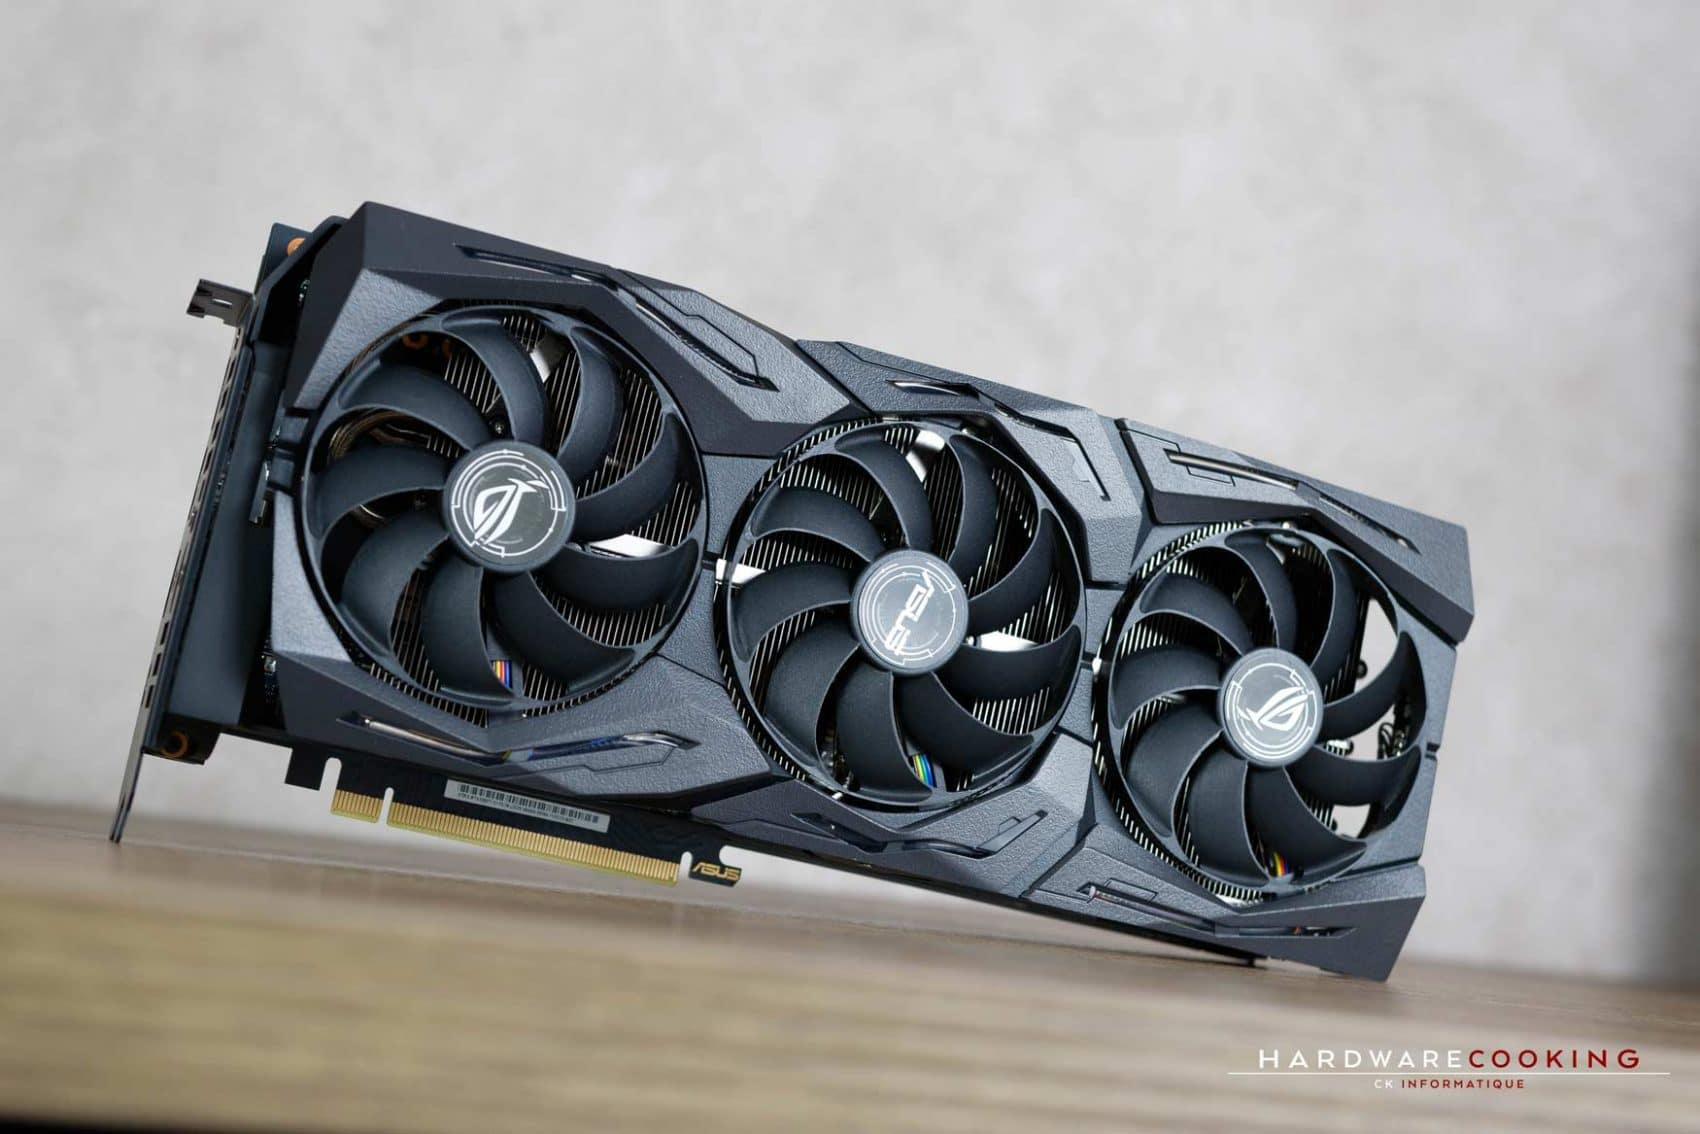 Test : ASUS ROG STRIX RTX 2080 Ti O11G GAMING - HardwareCooking